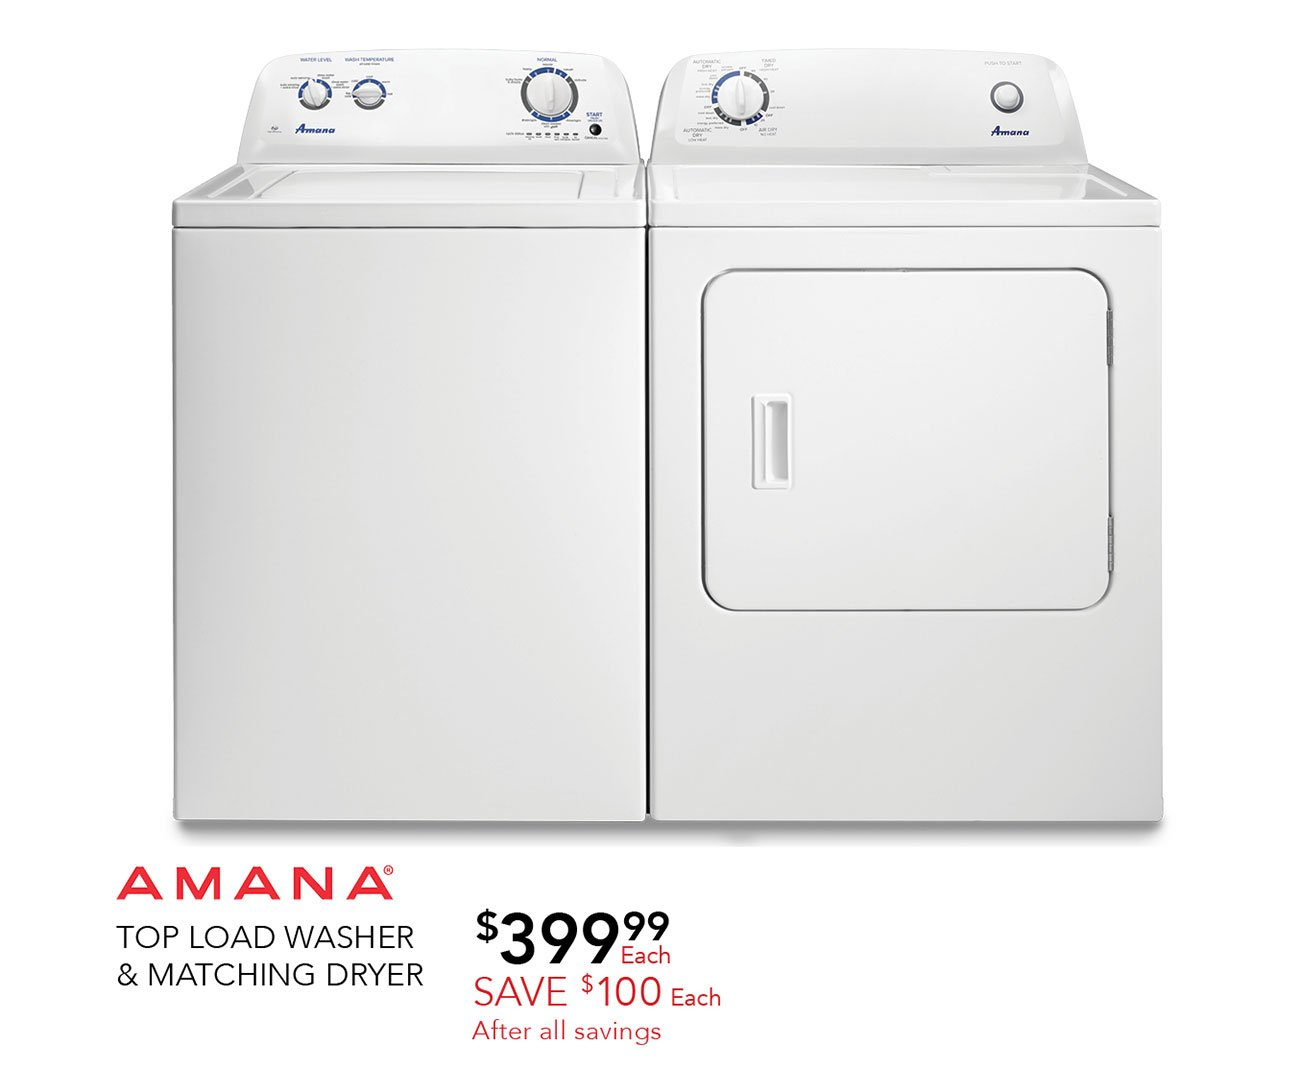 Amana-top-load-wsher-dryer